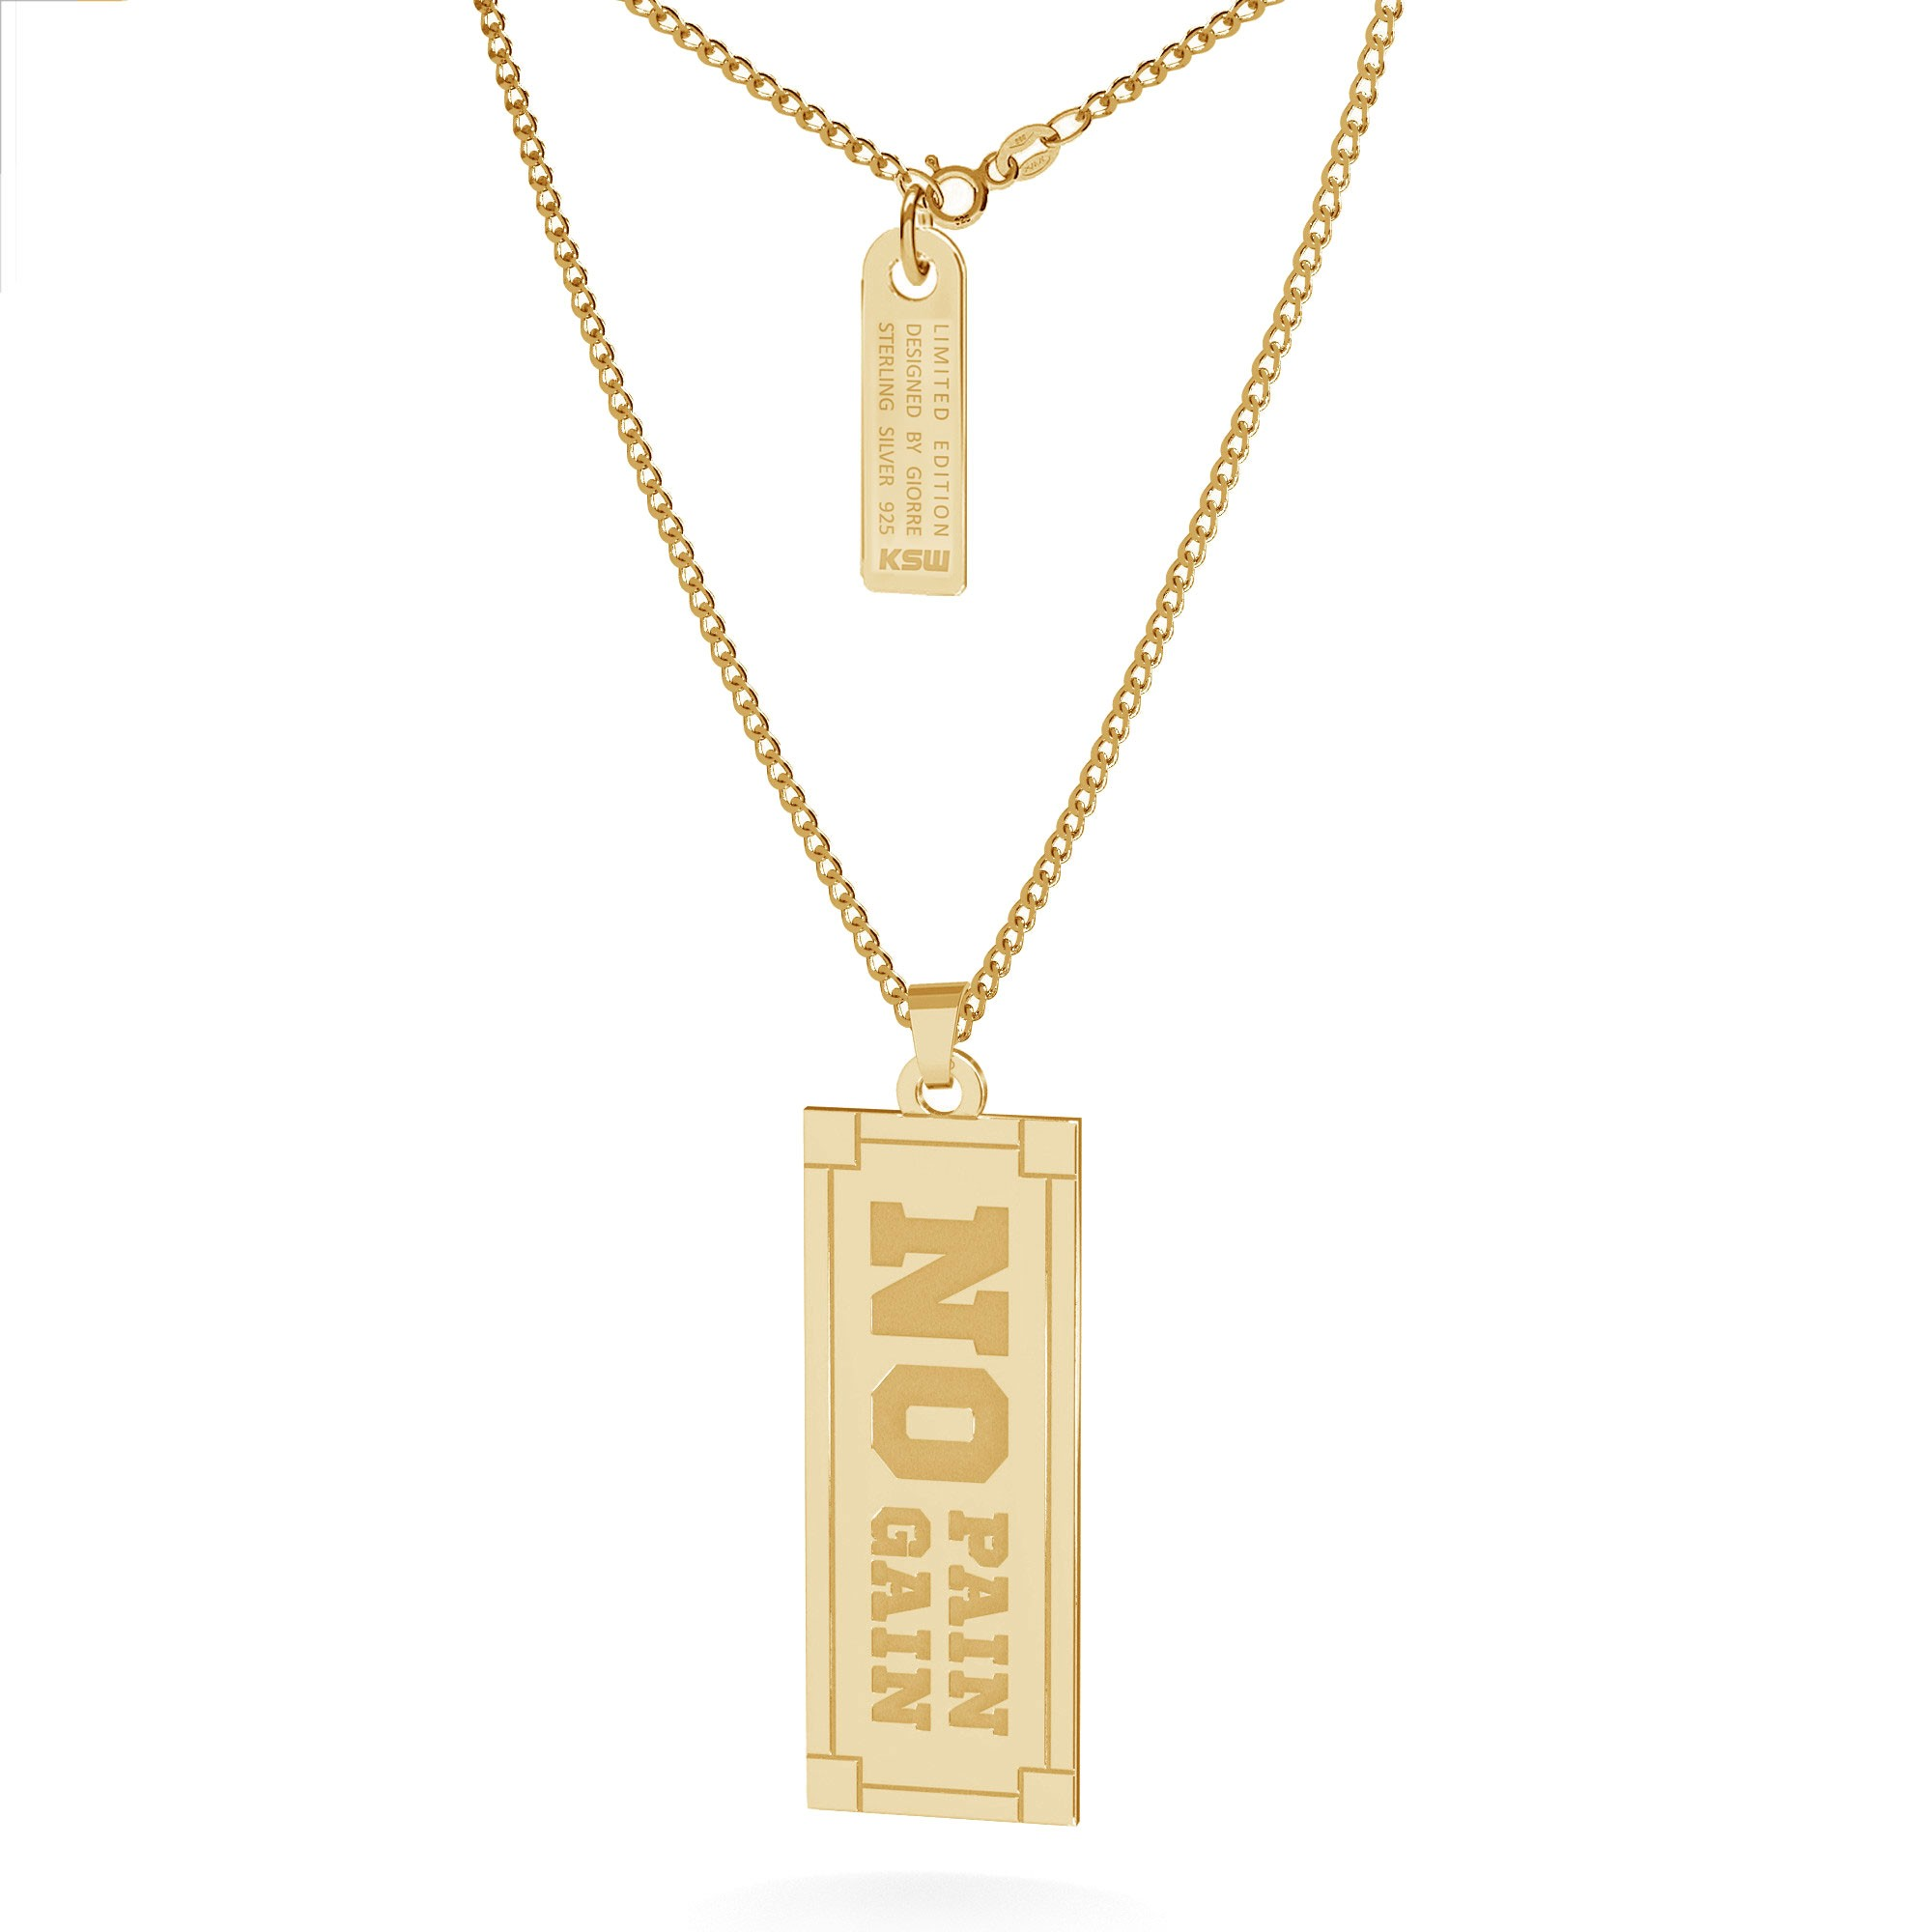 Silver necklace No pain no gain sign, curb chain